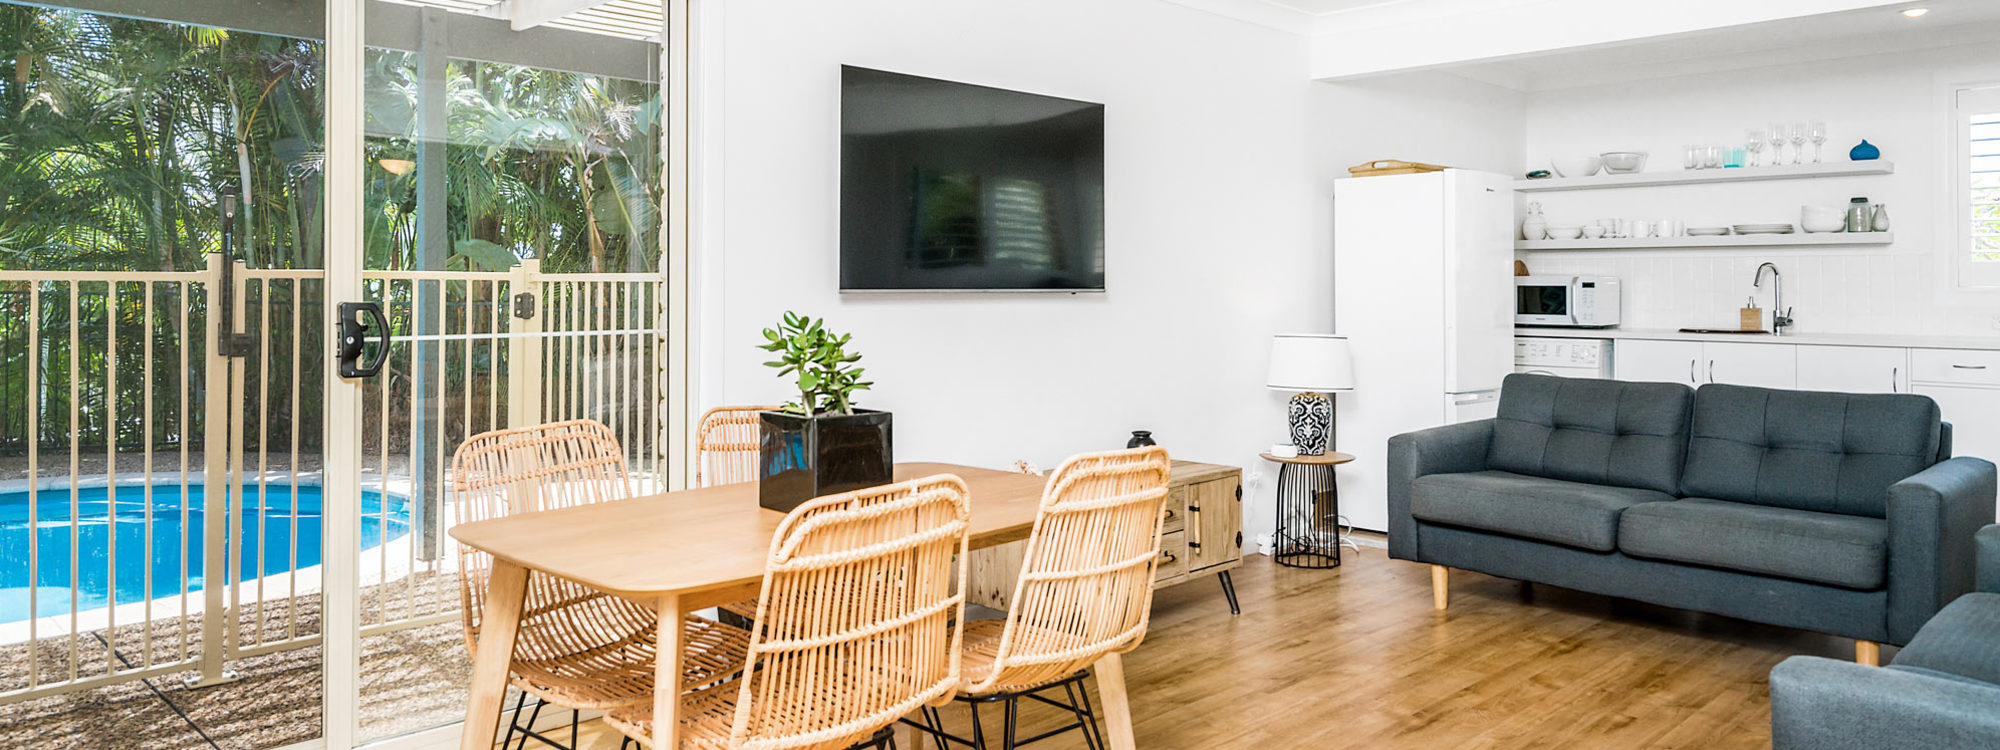 Boulders Retreat - Lennox Head - Dining and Living Area